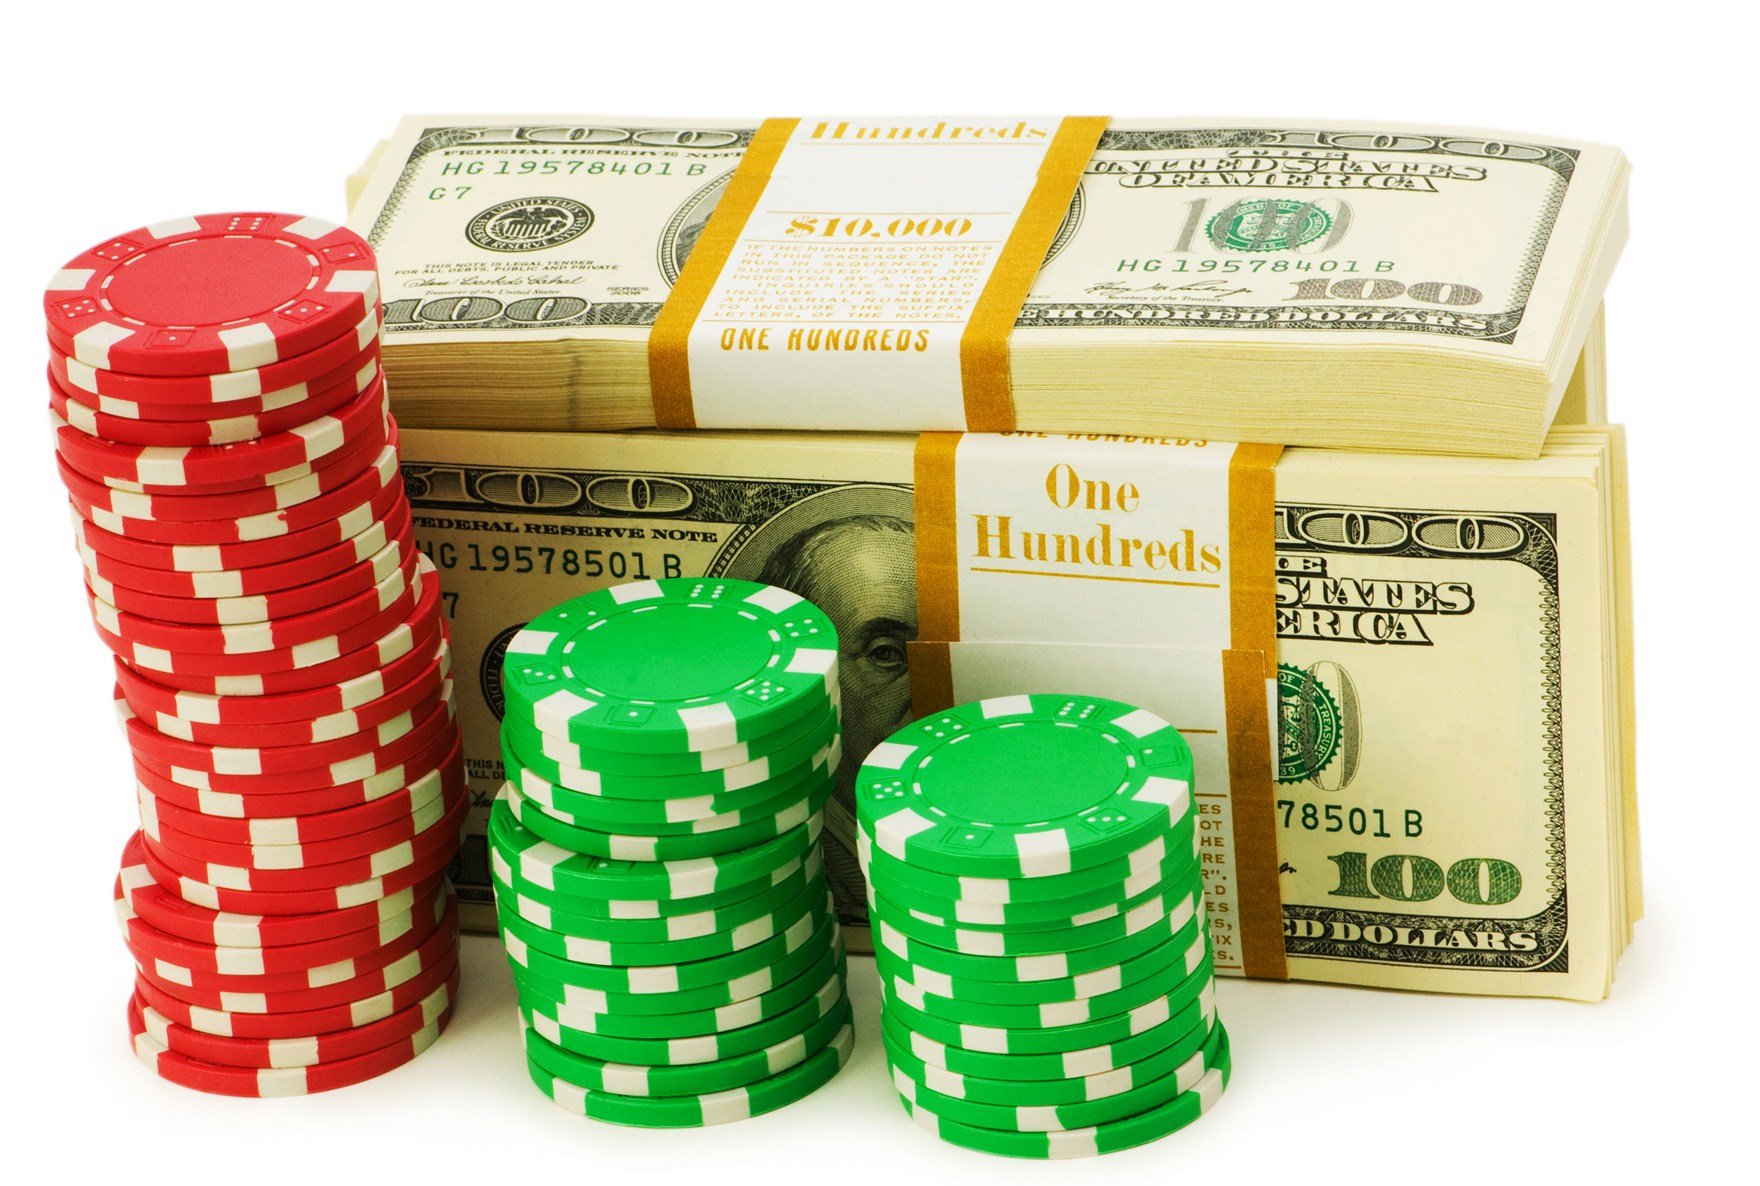 Texas holdem poker hand rankings